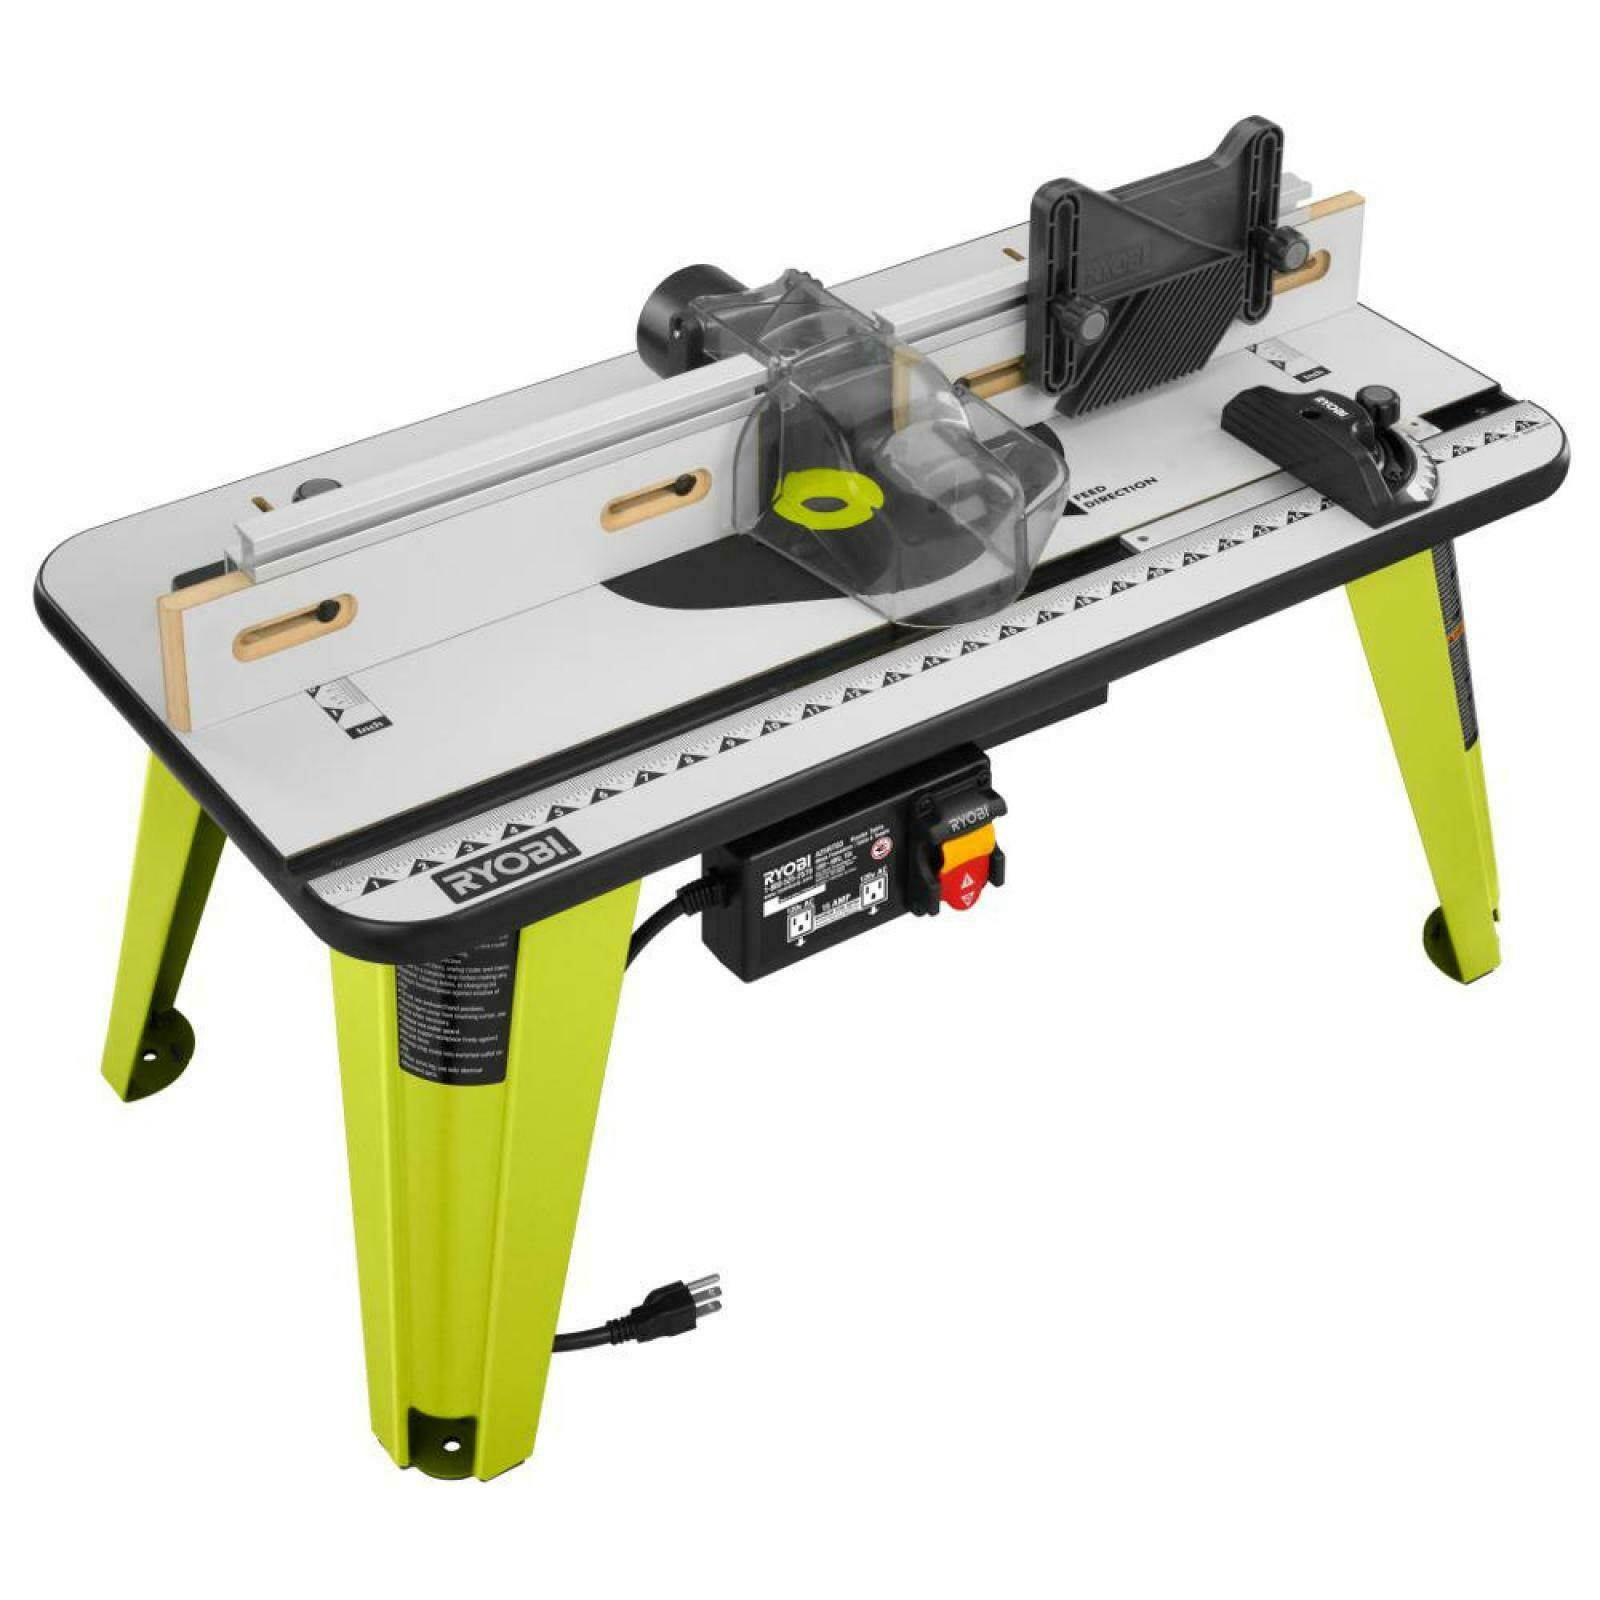 Router Table 32 in x 16 in Universal Power Tool in Grün with 5 Throat Plates